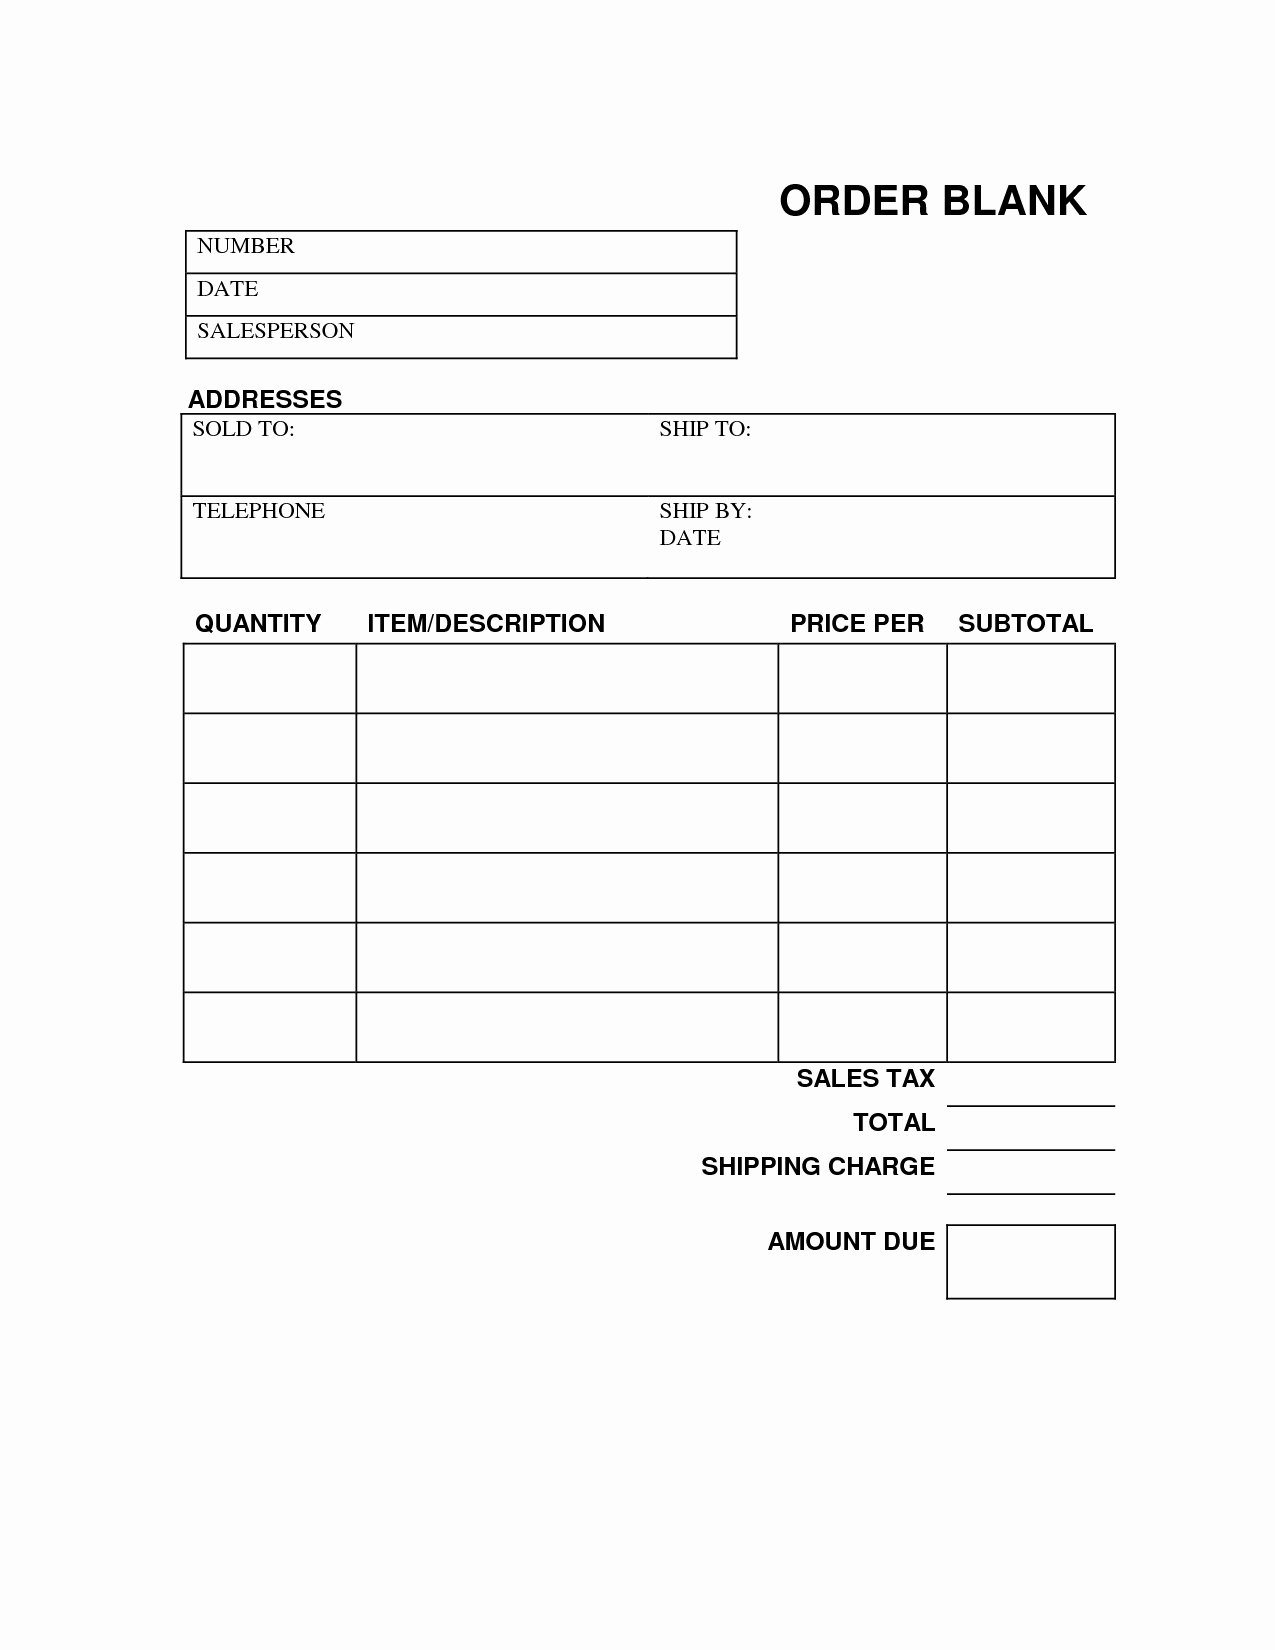 Free Printable Office forms Awesome Best S Of Free Printable Fice forms Templates